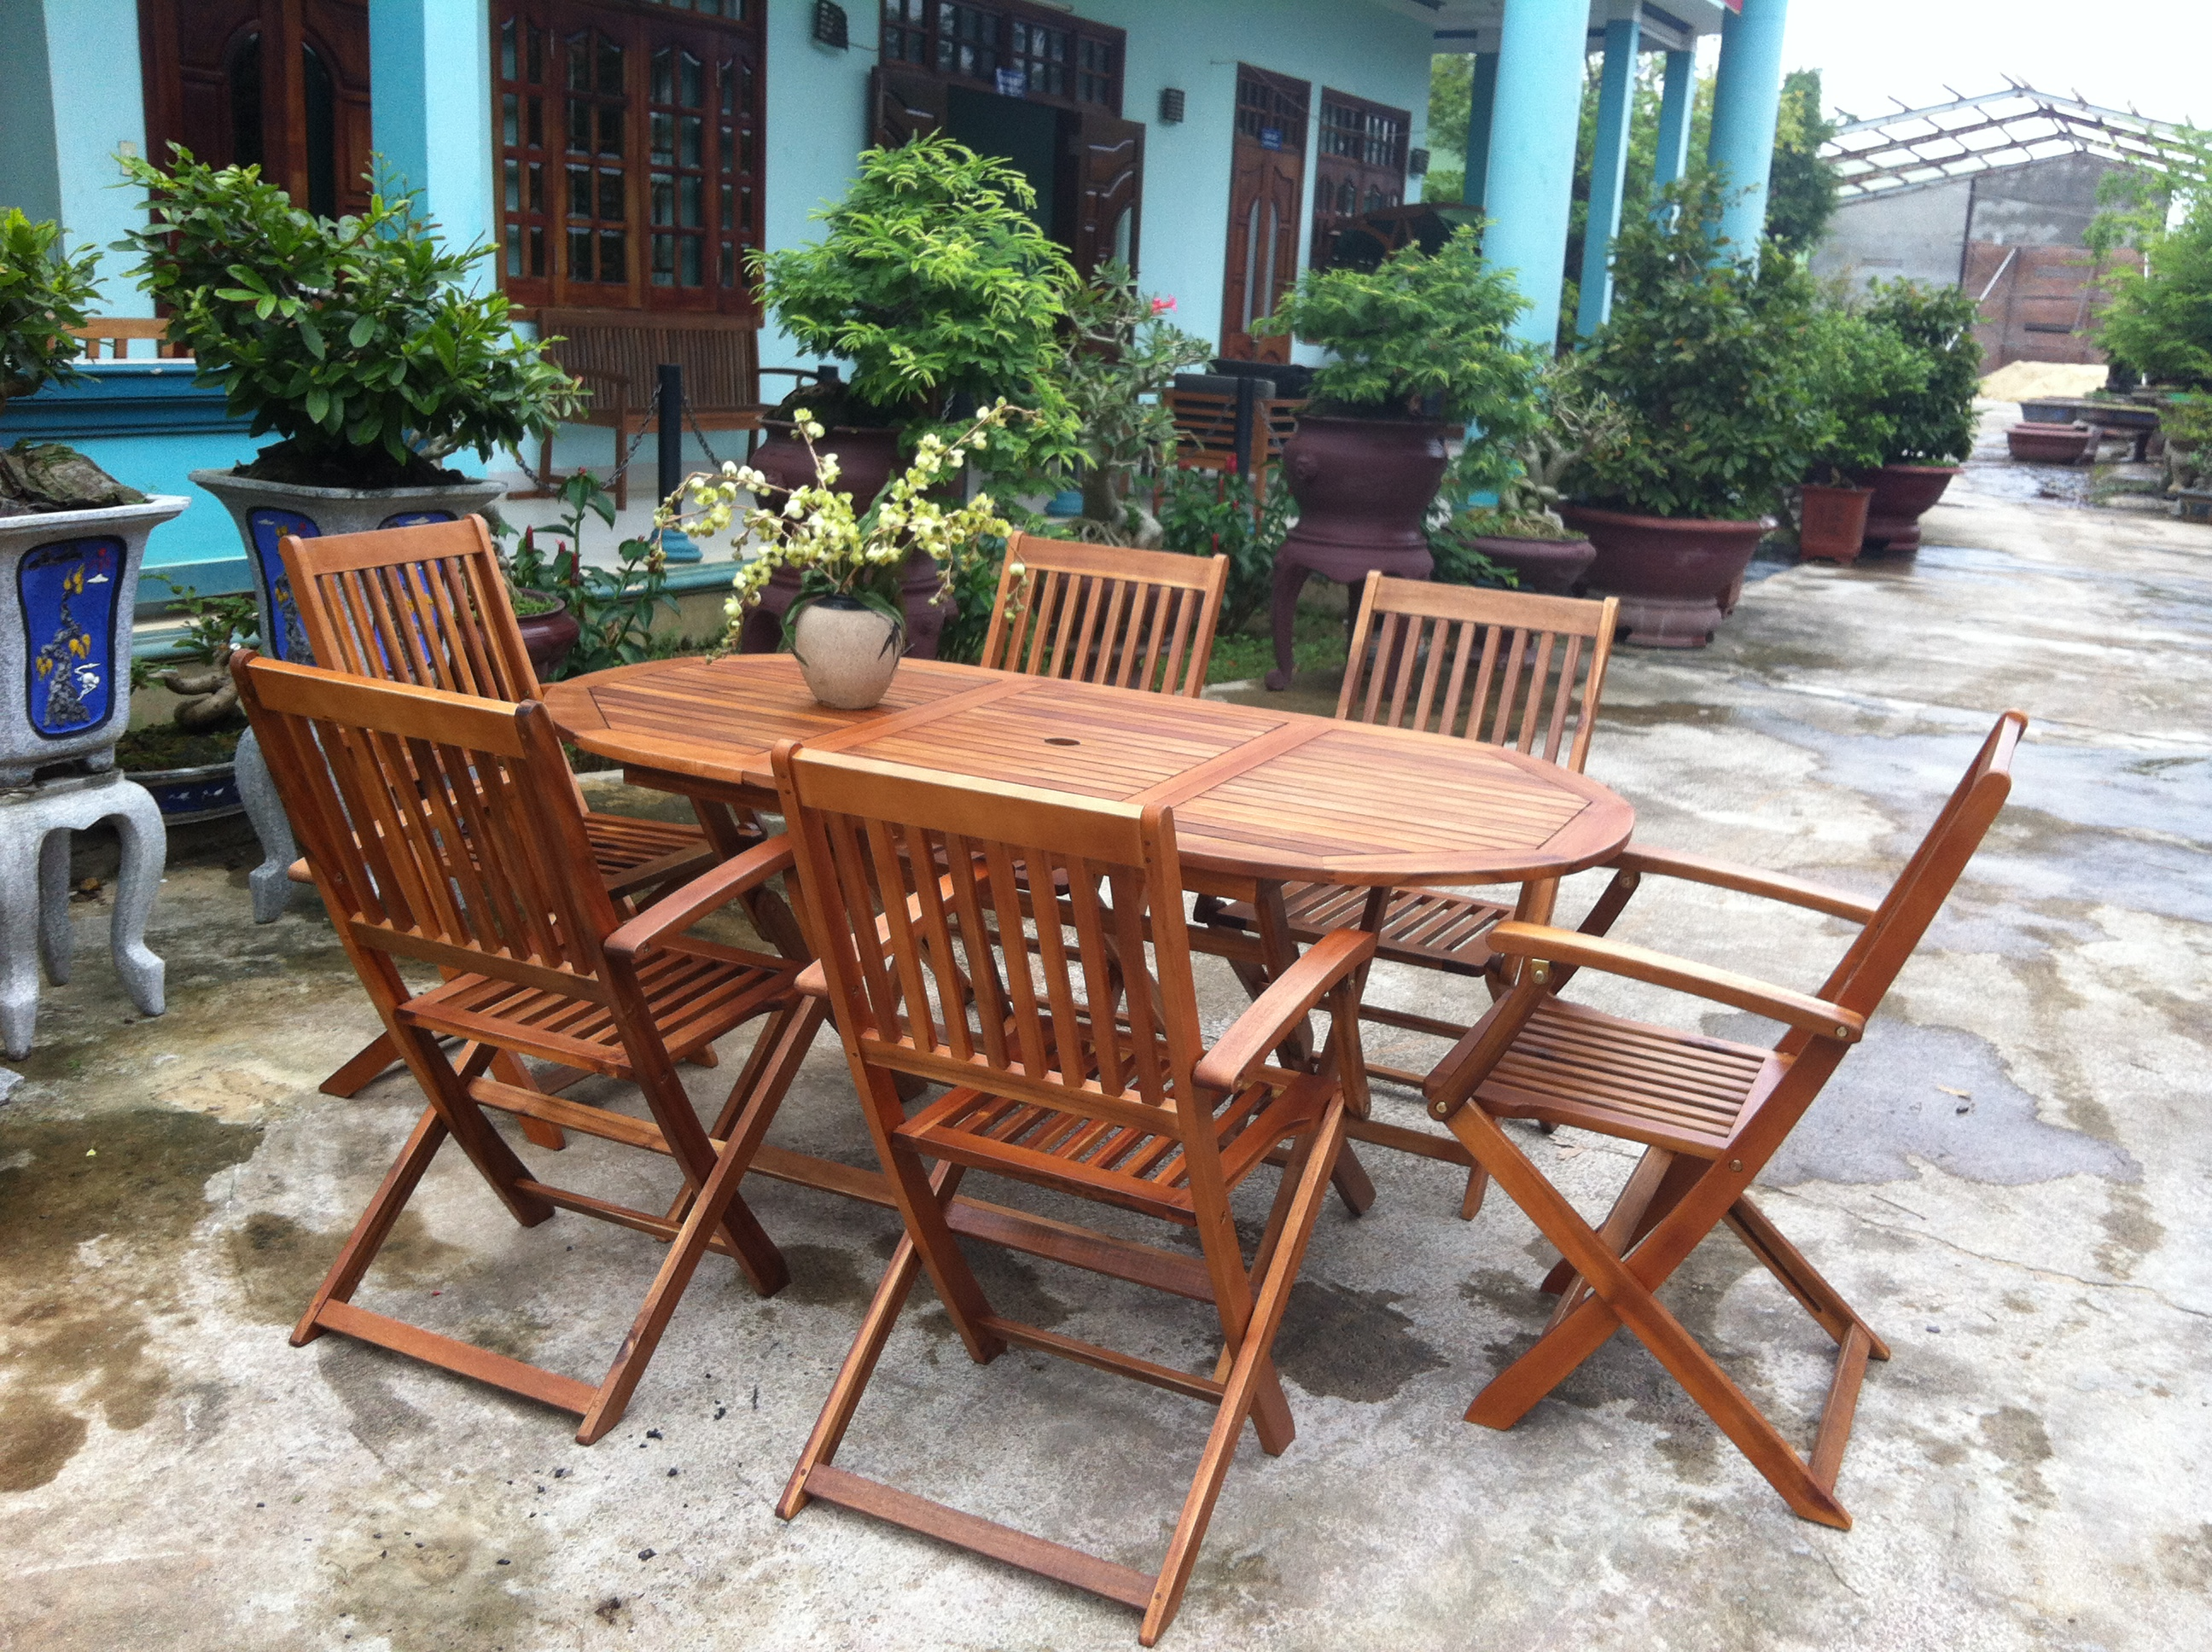 Garden oval table 6 chairs wooden patio outdoor dining furniture folding set